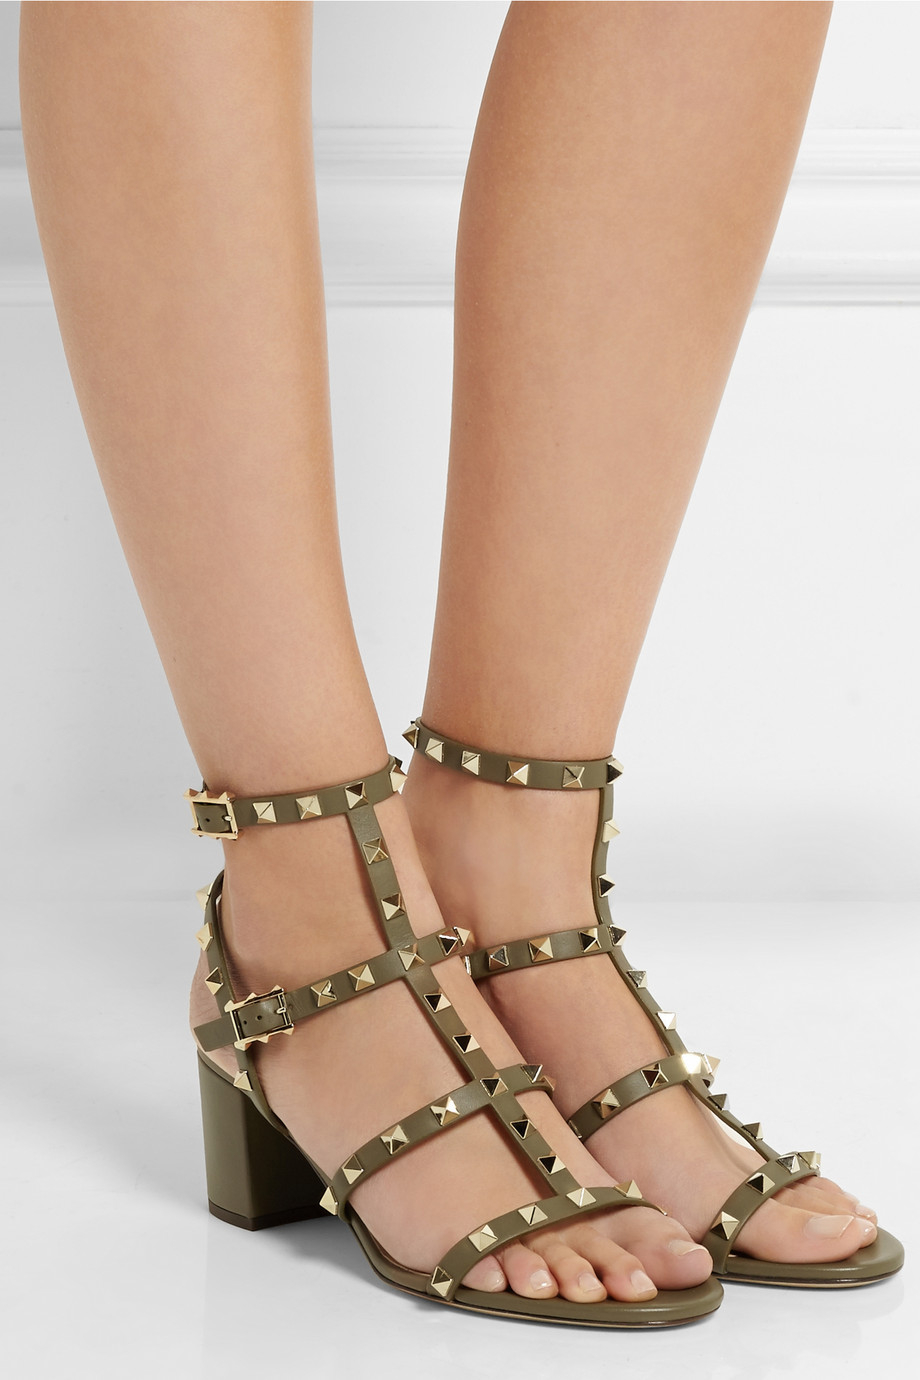 Valentino Rockstud Inspired Flat Shoes